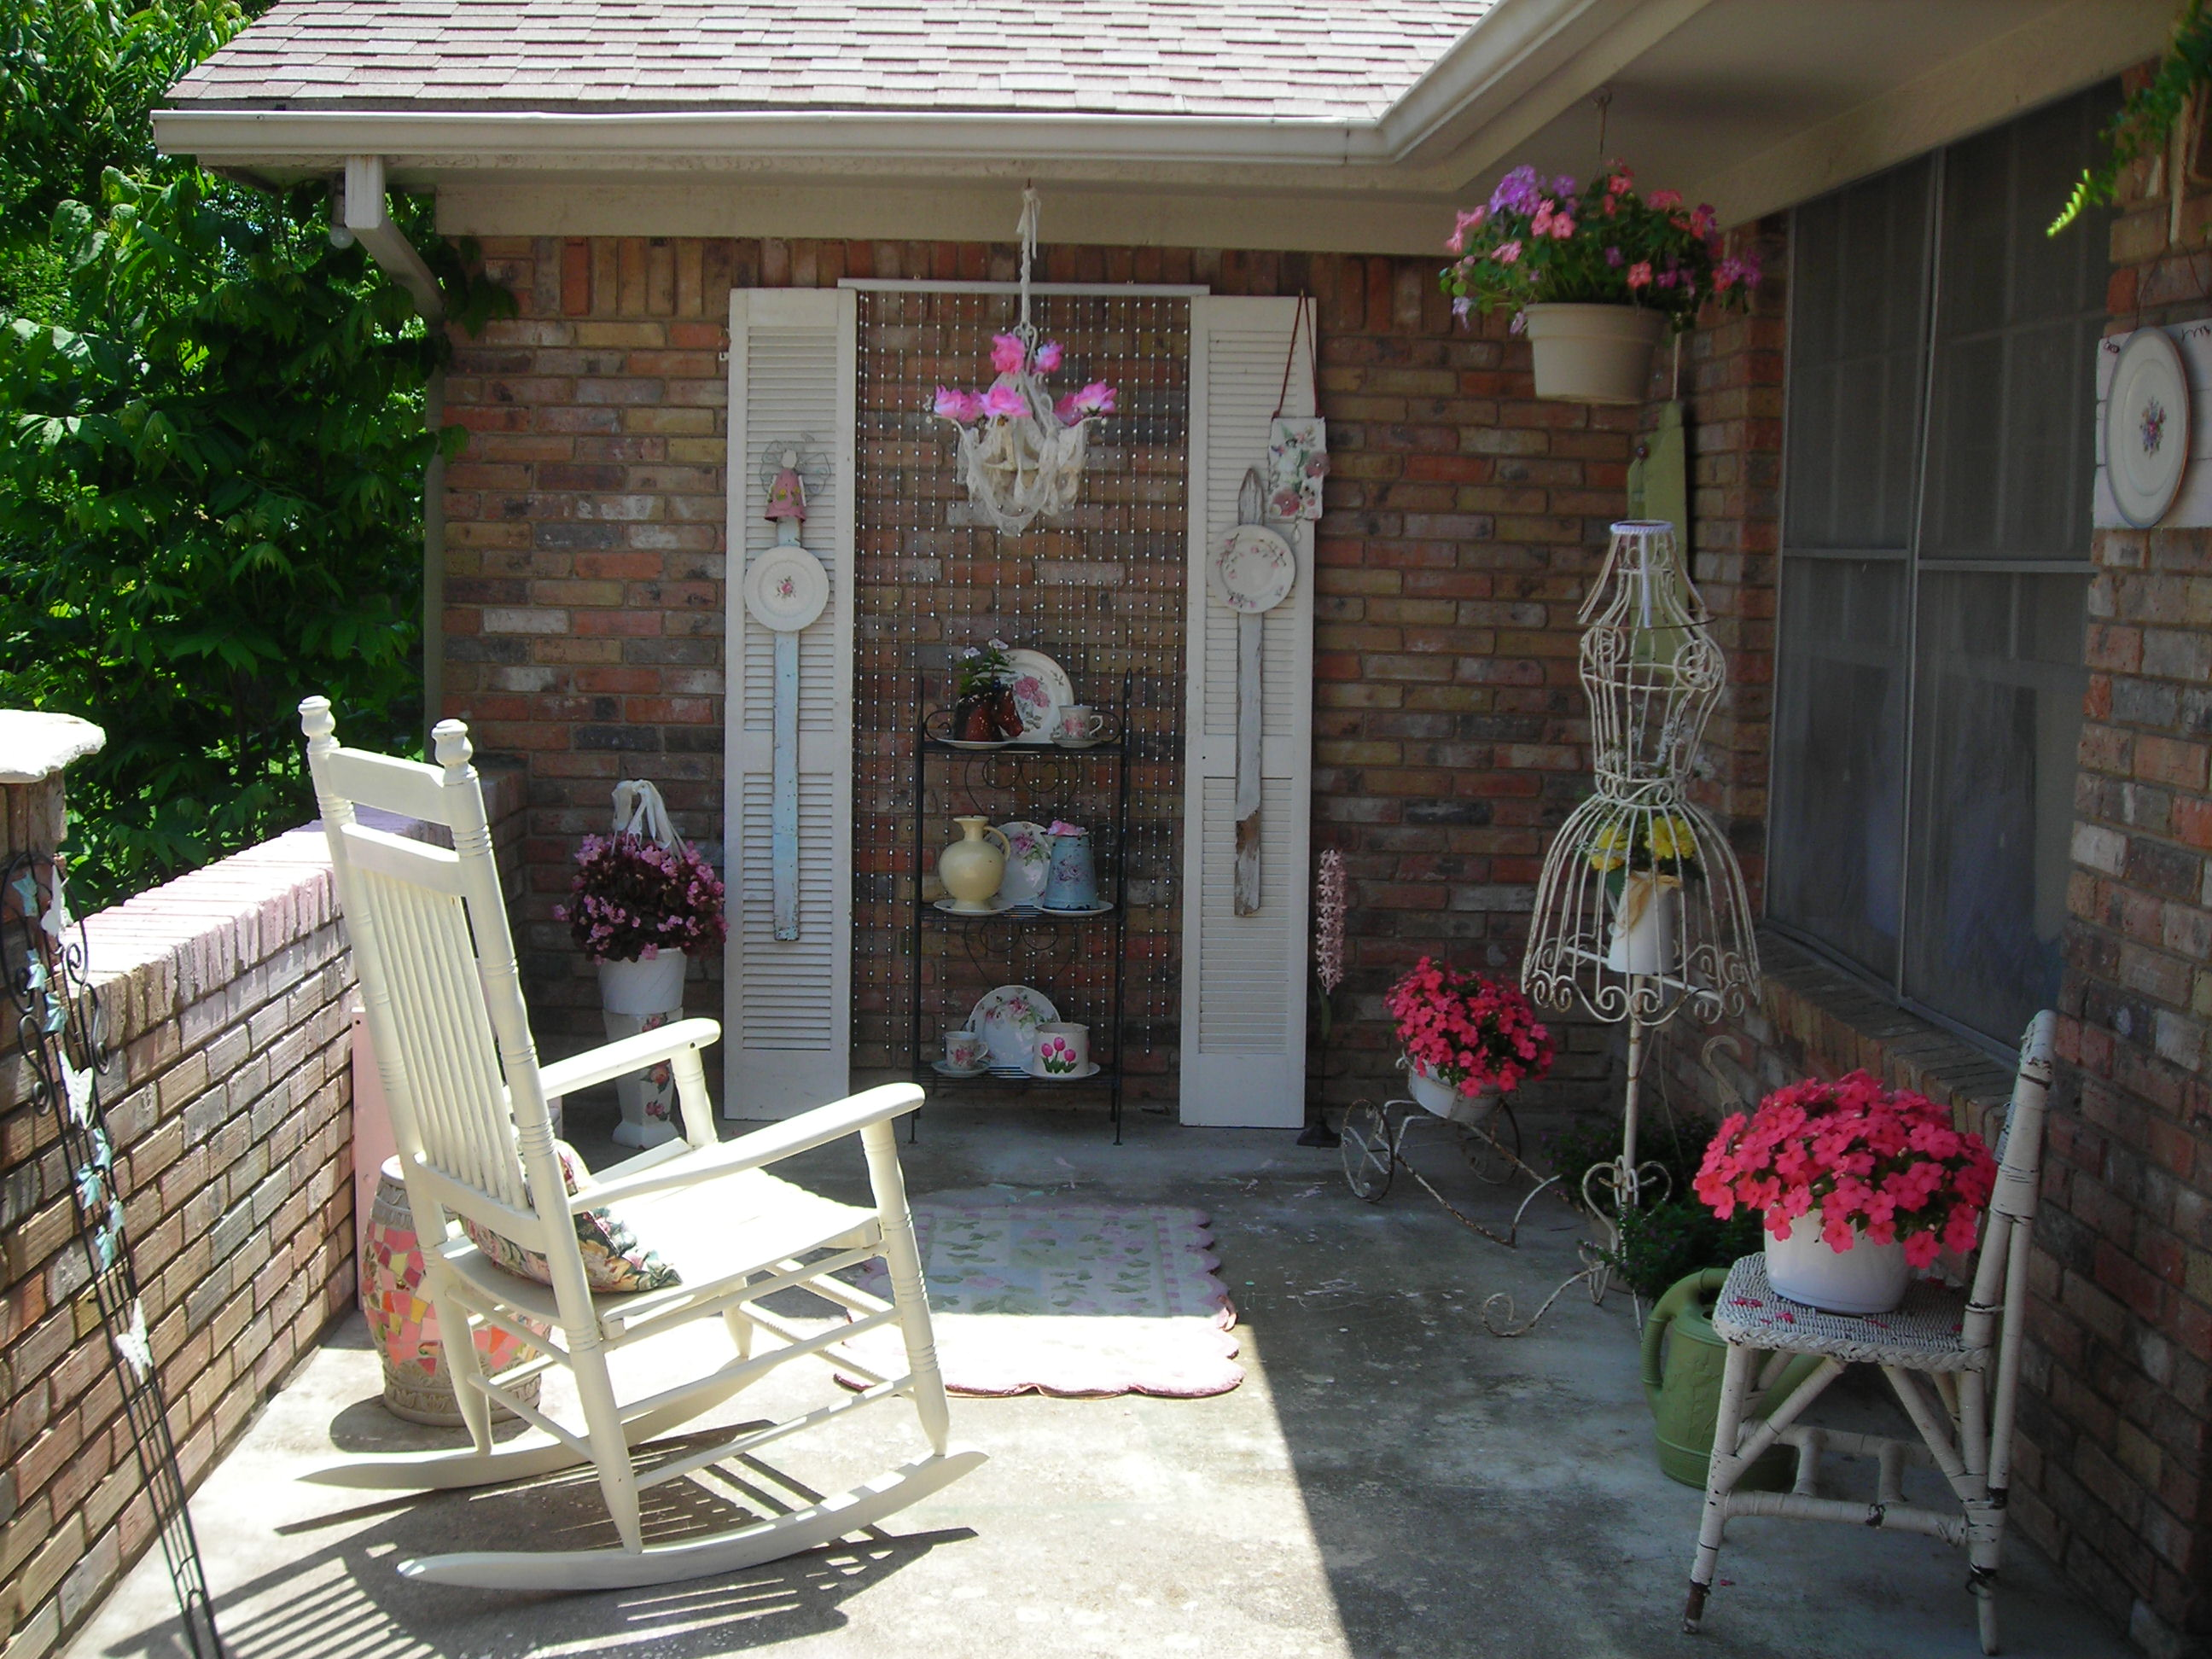 my patio makeover. it used to be verrrrry scary. now it's an outside room! very lovely and inviting. love it!